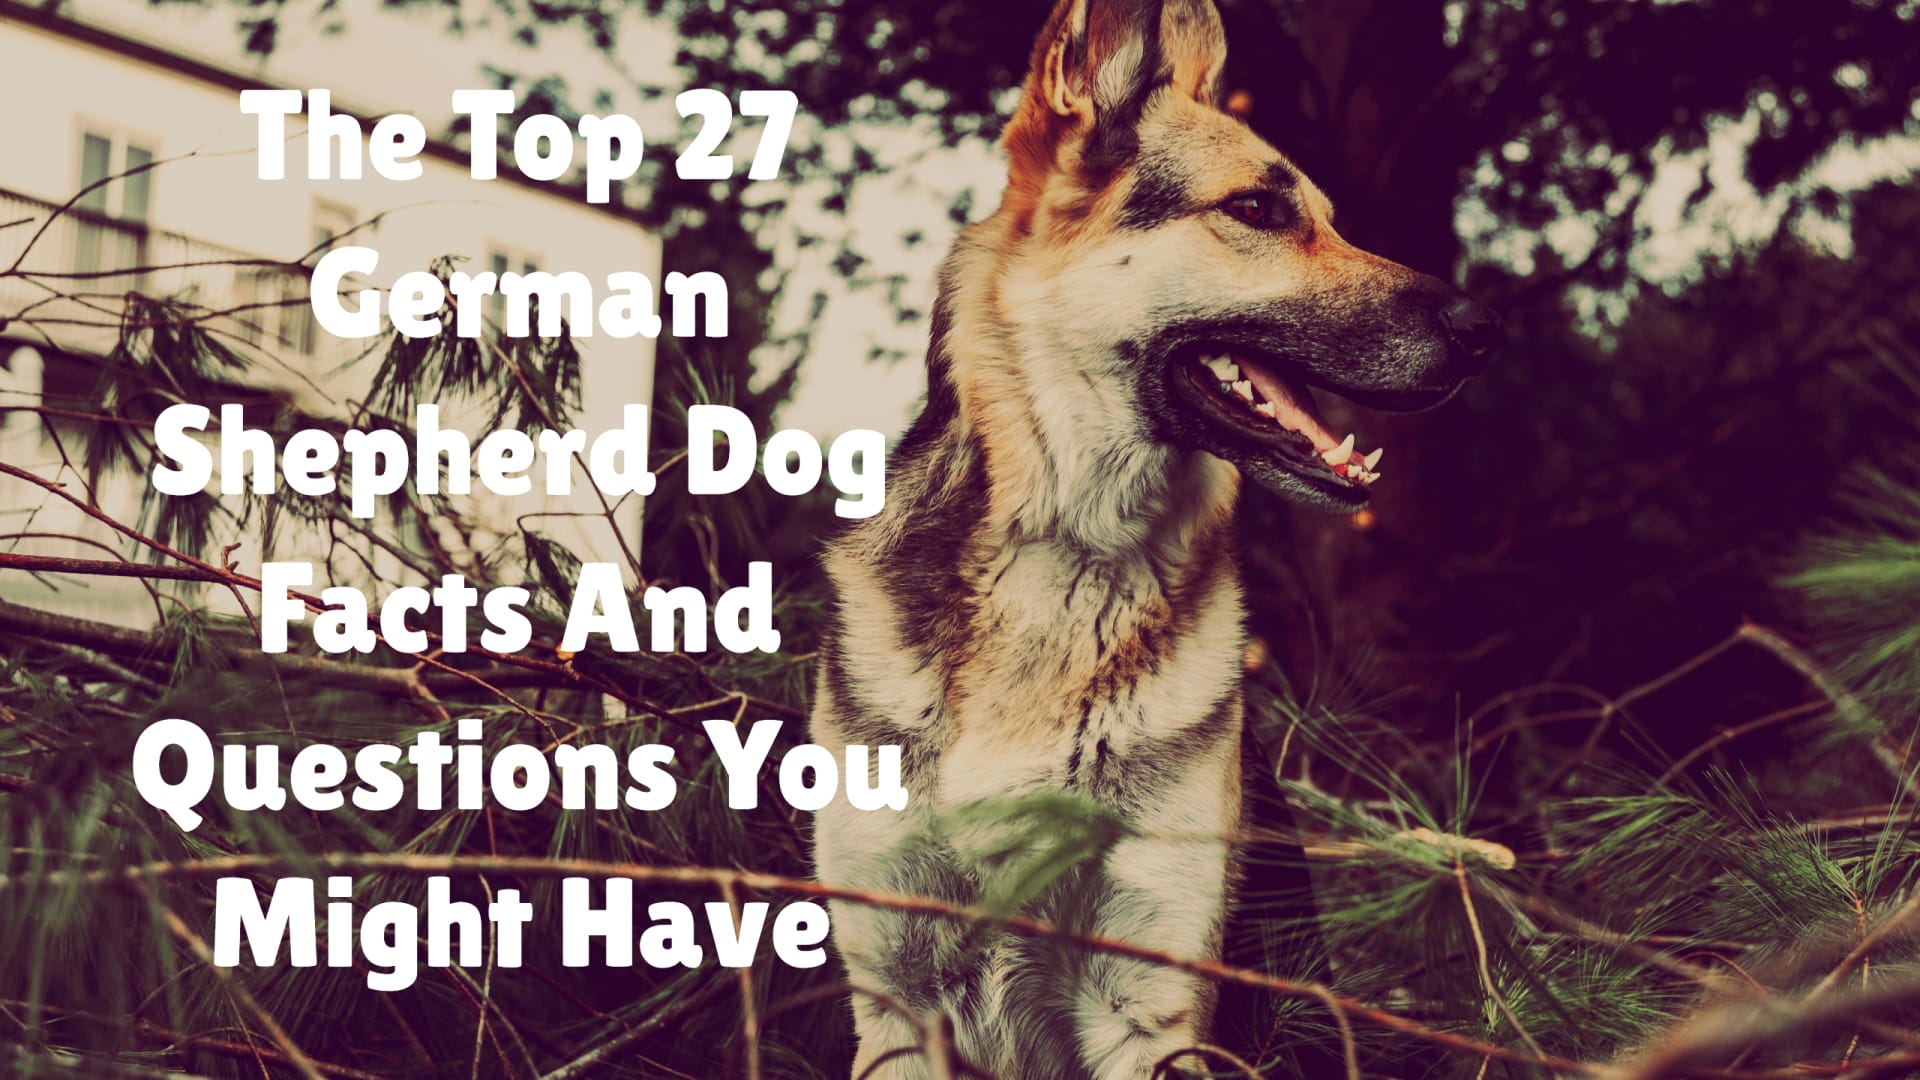 German Shepherd dog facts and questions